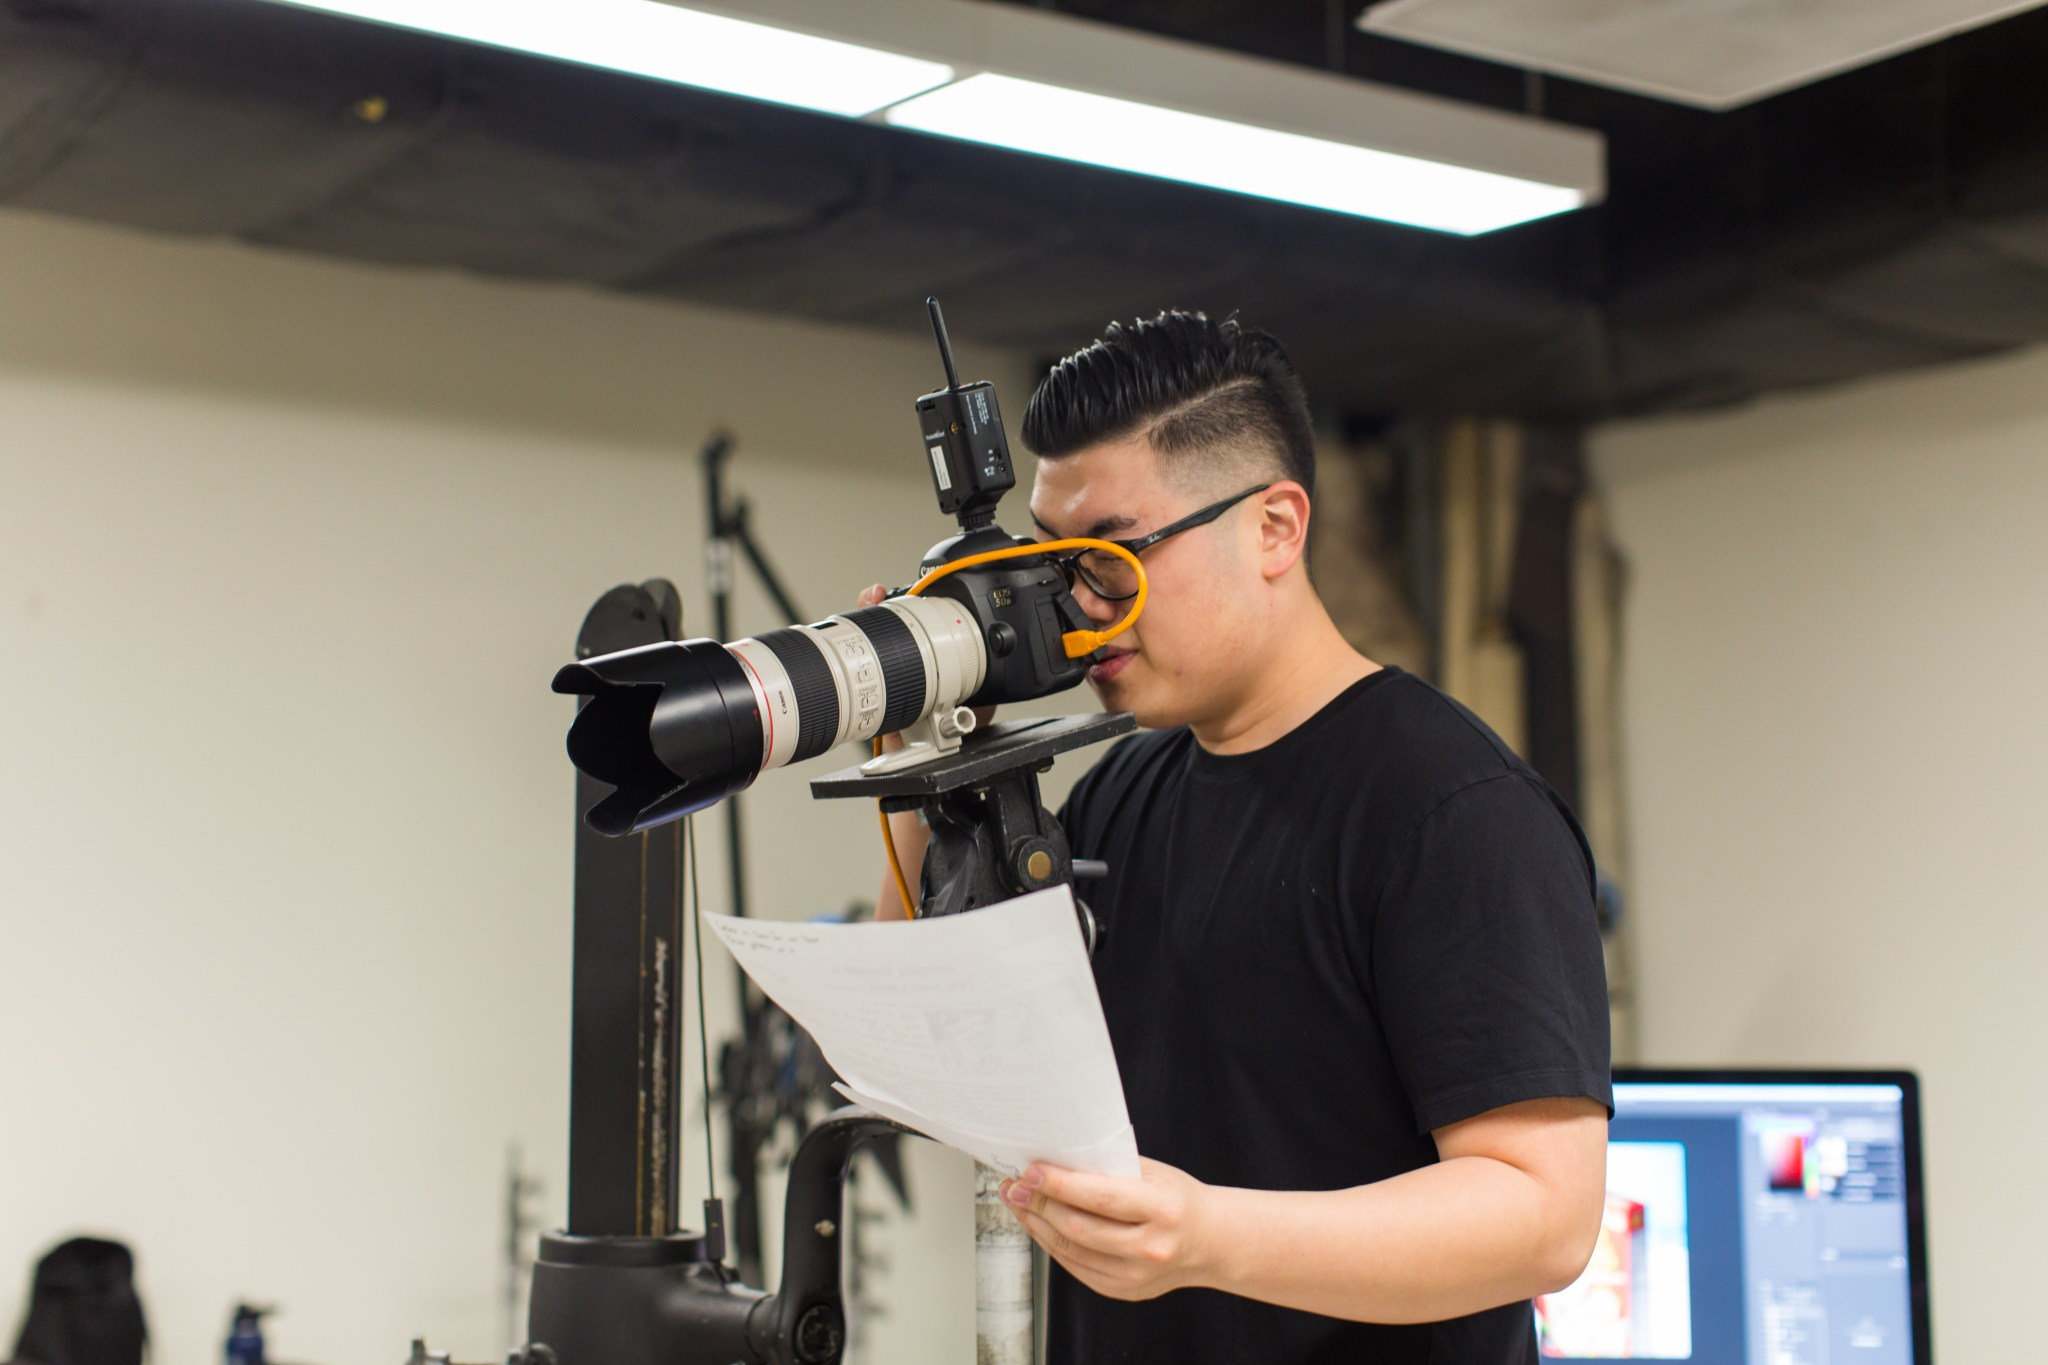 Student using a camera